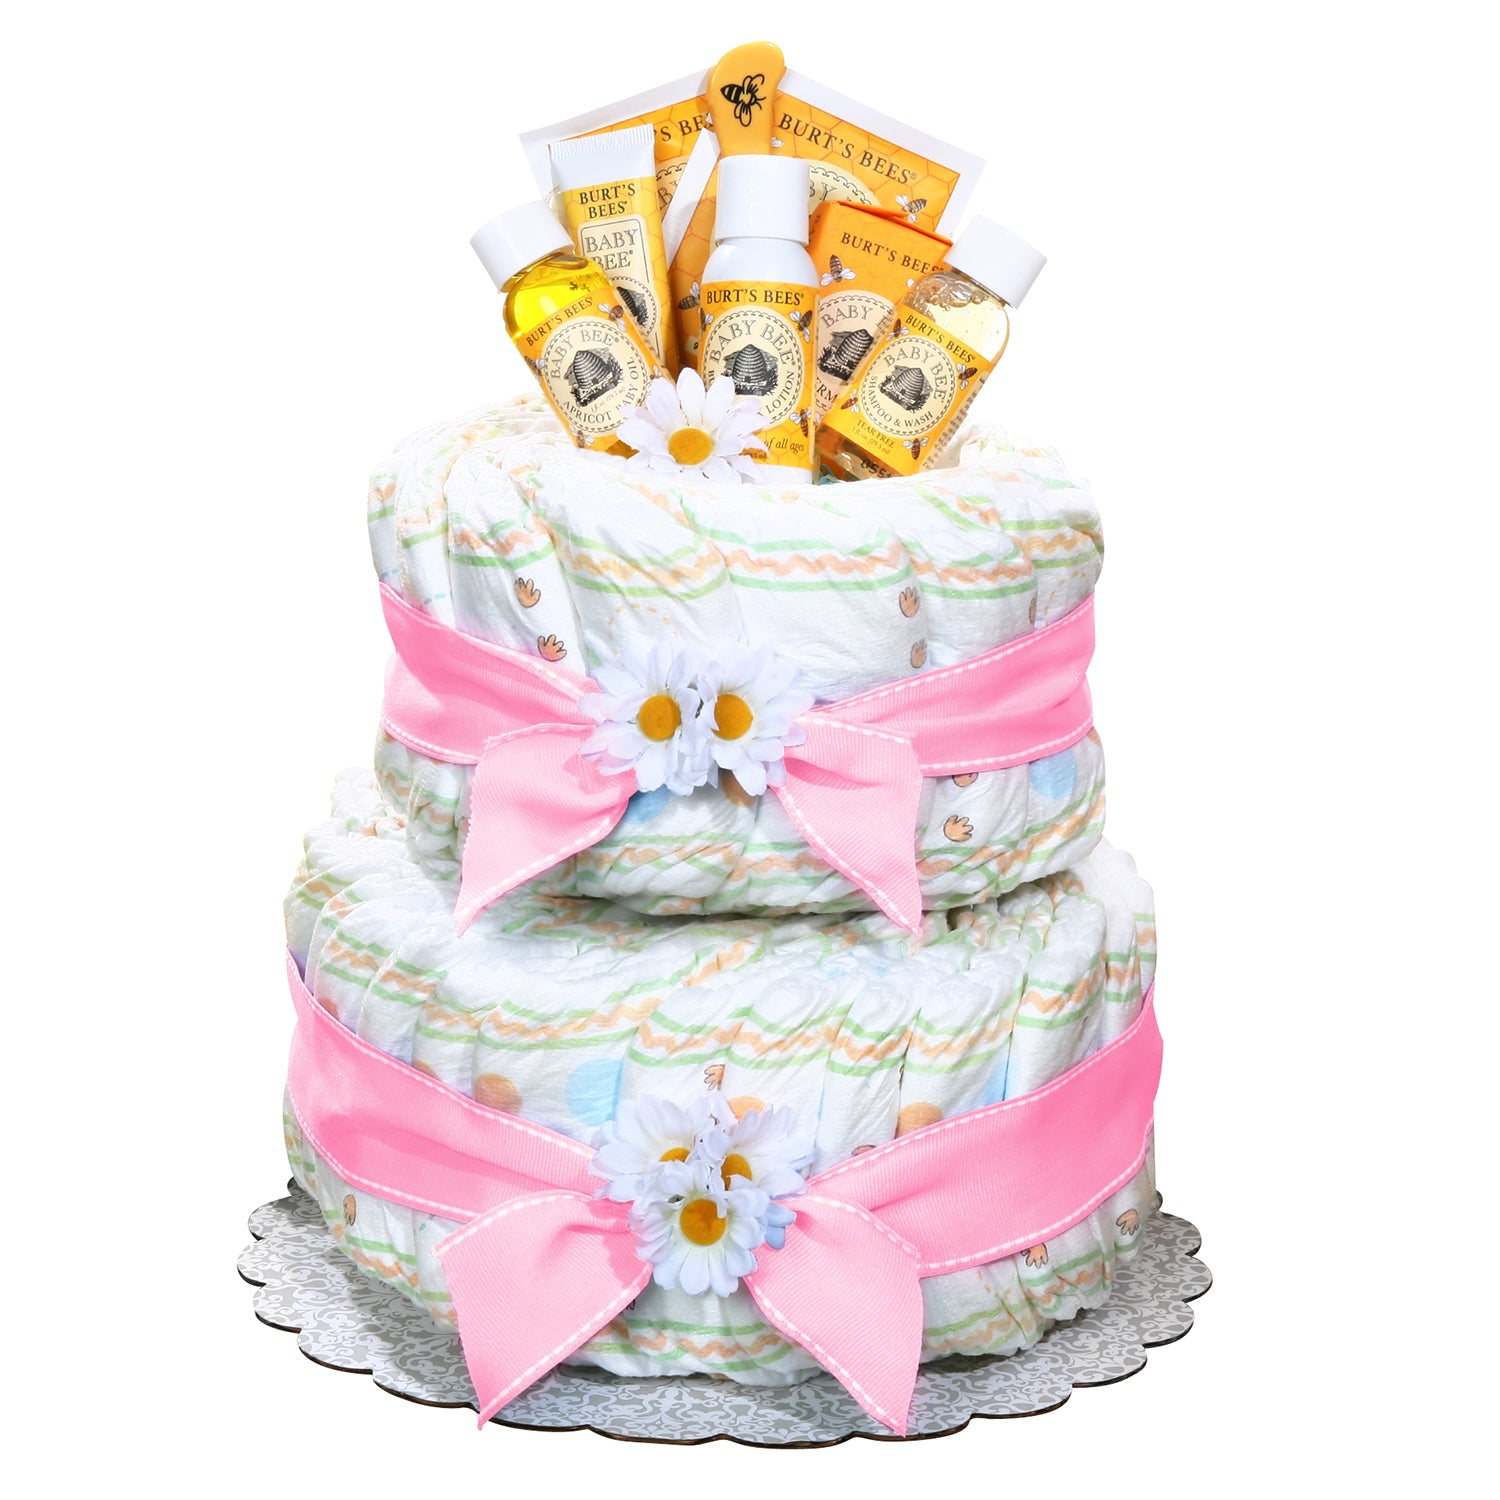 Burt's Bees Diaper Cake for Girl Baby Gift